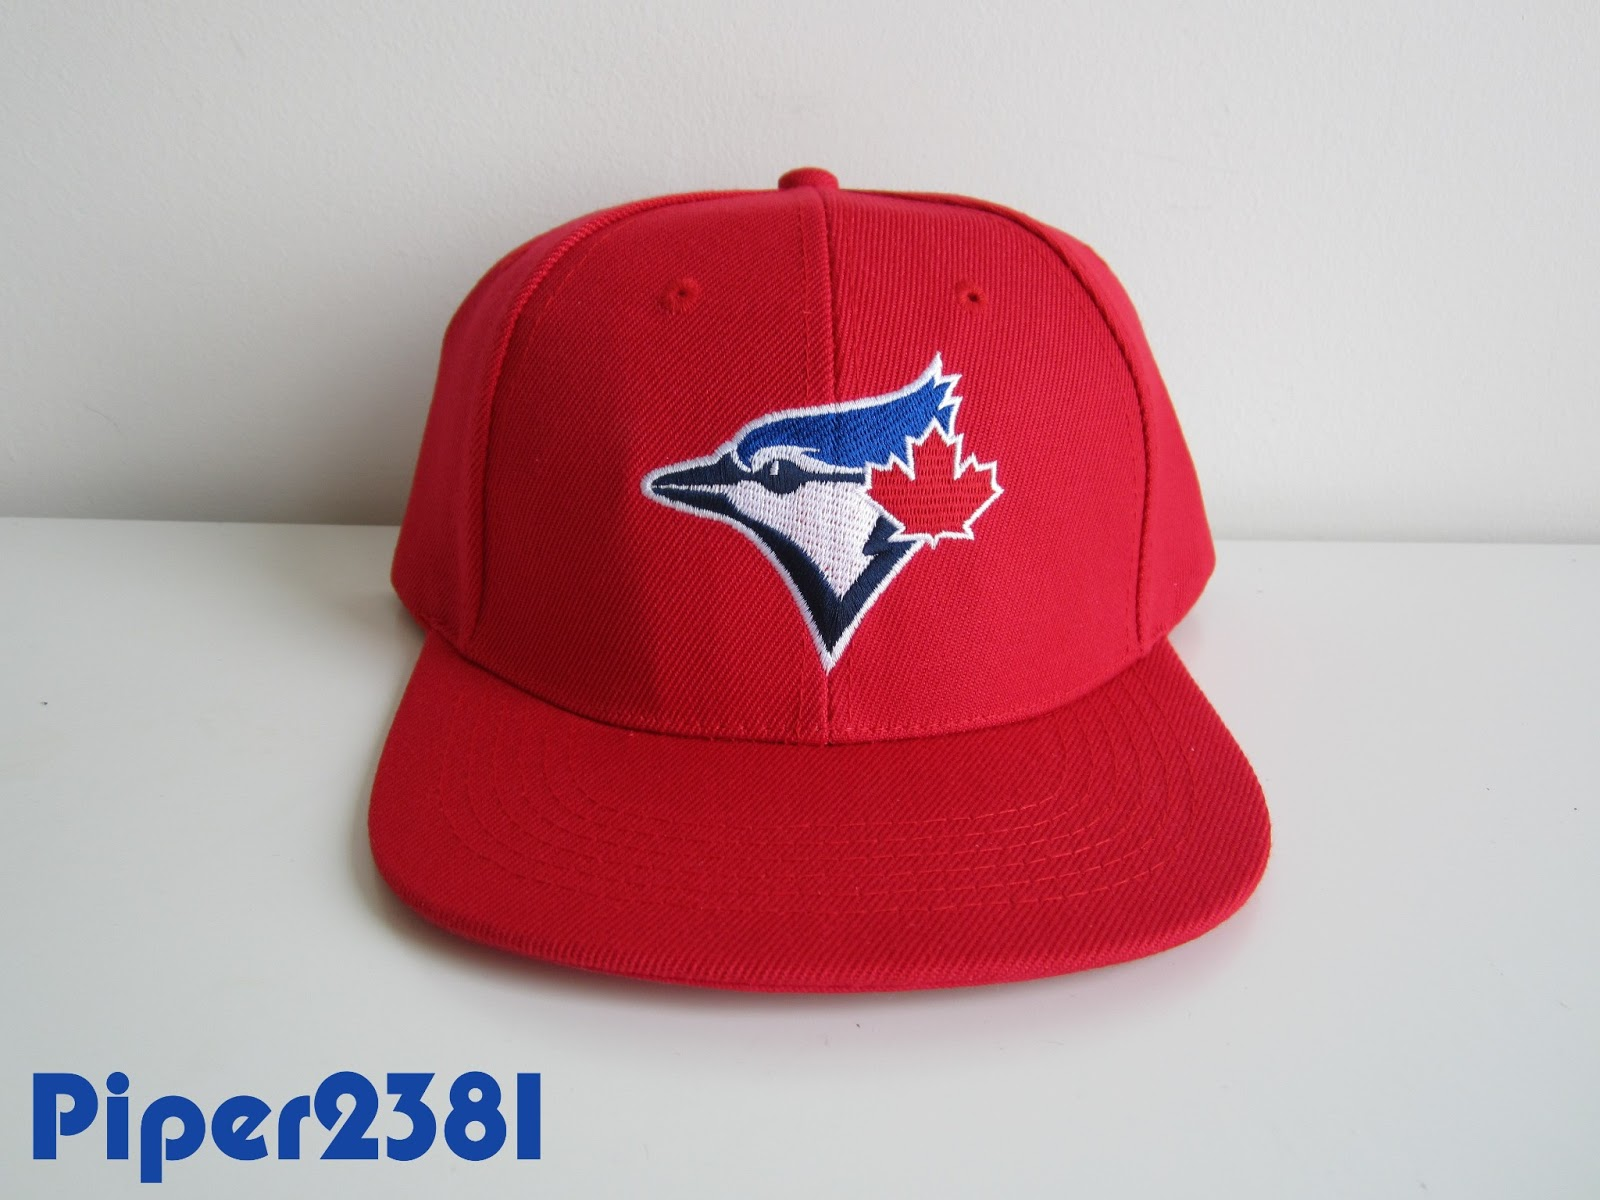 94acf411c81 Piper2381  Canada Day 2013 Blue Jays Hat